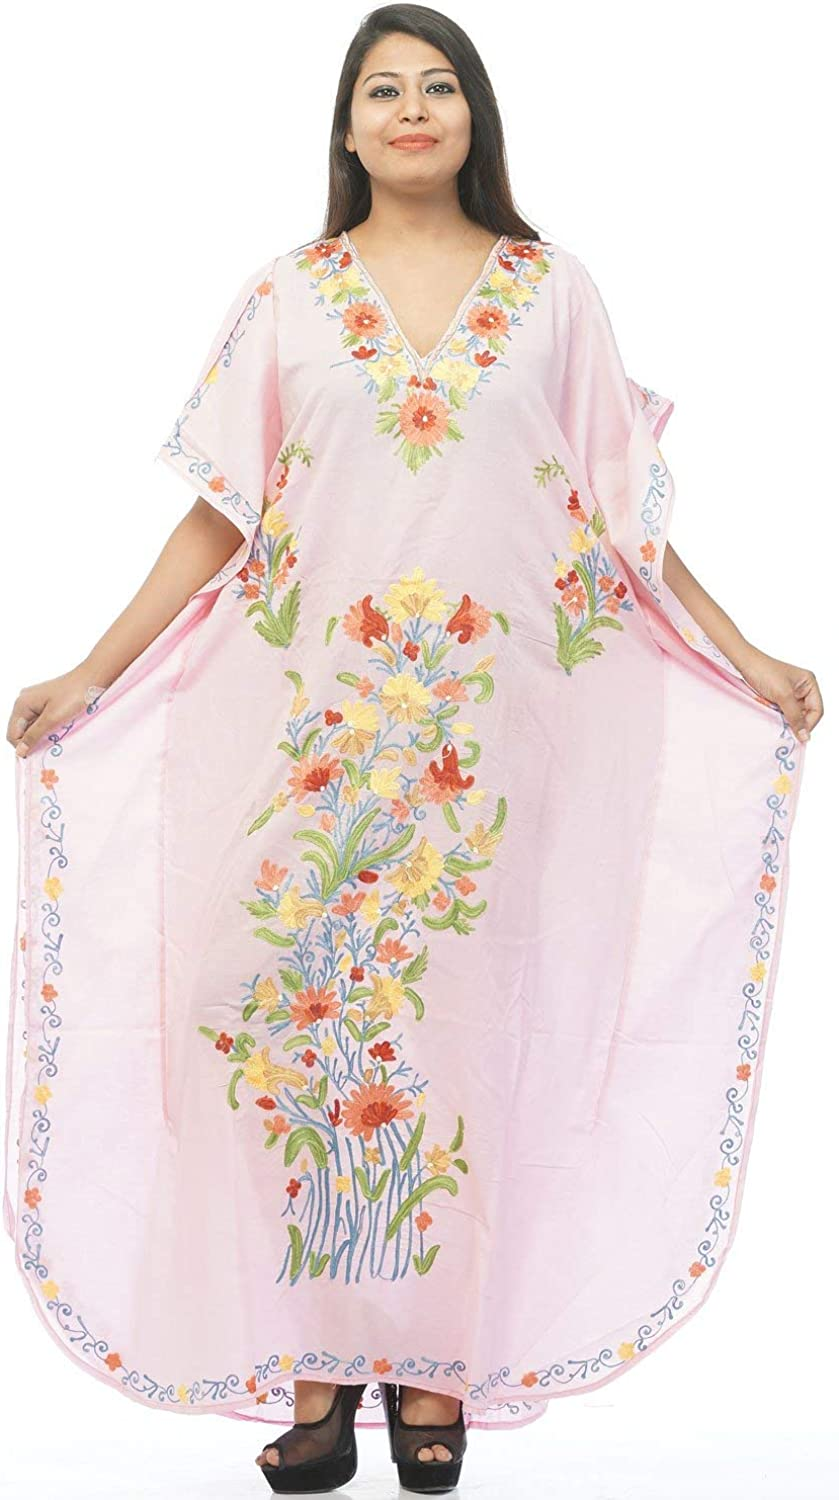 Odishabazaar Cotton Kashmiri Kaftan Aari Work Caftan Dress Beach Cover Up